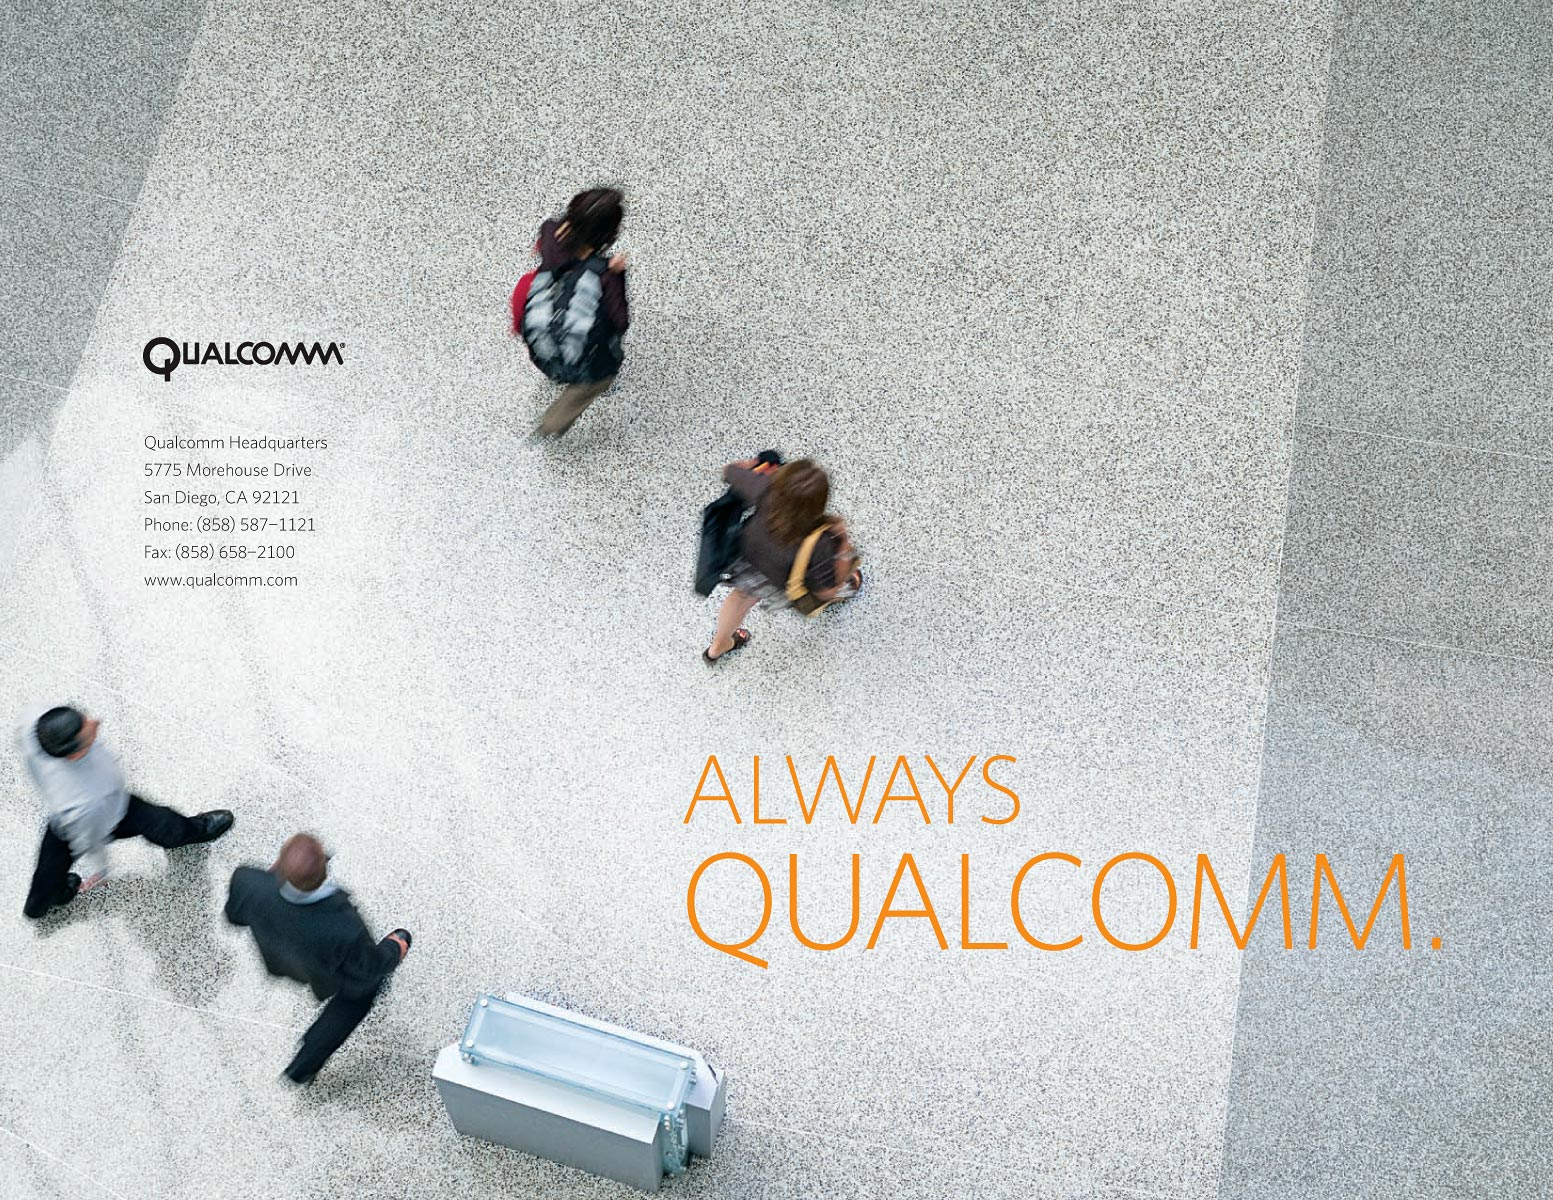 Qualcomm 2008 Overview